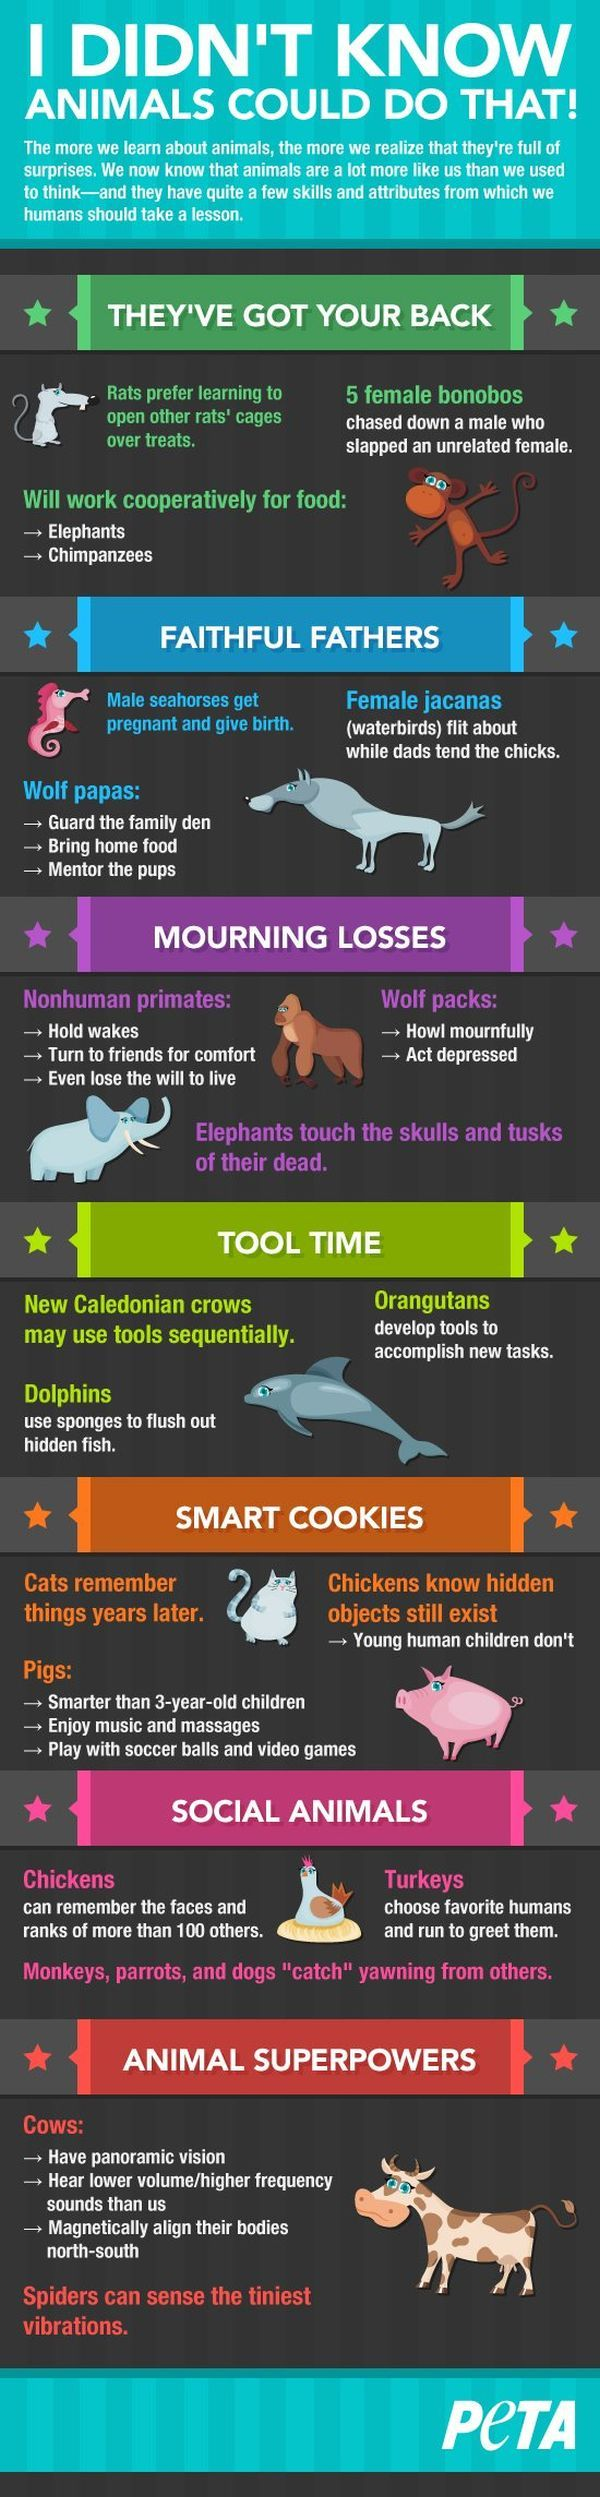 I Didn't Know Animals Could Do That! (infographic)